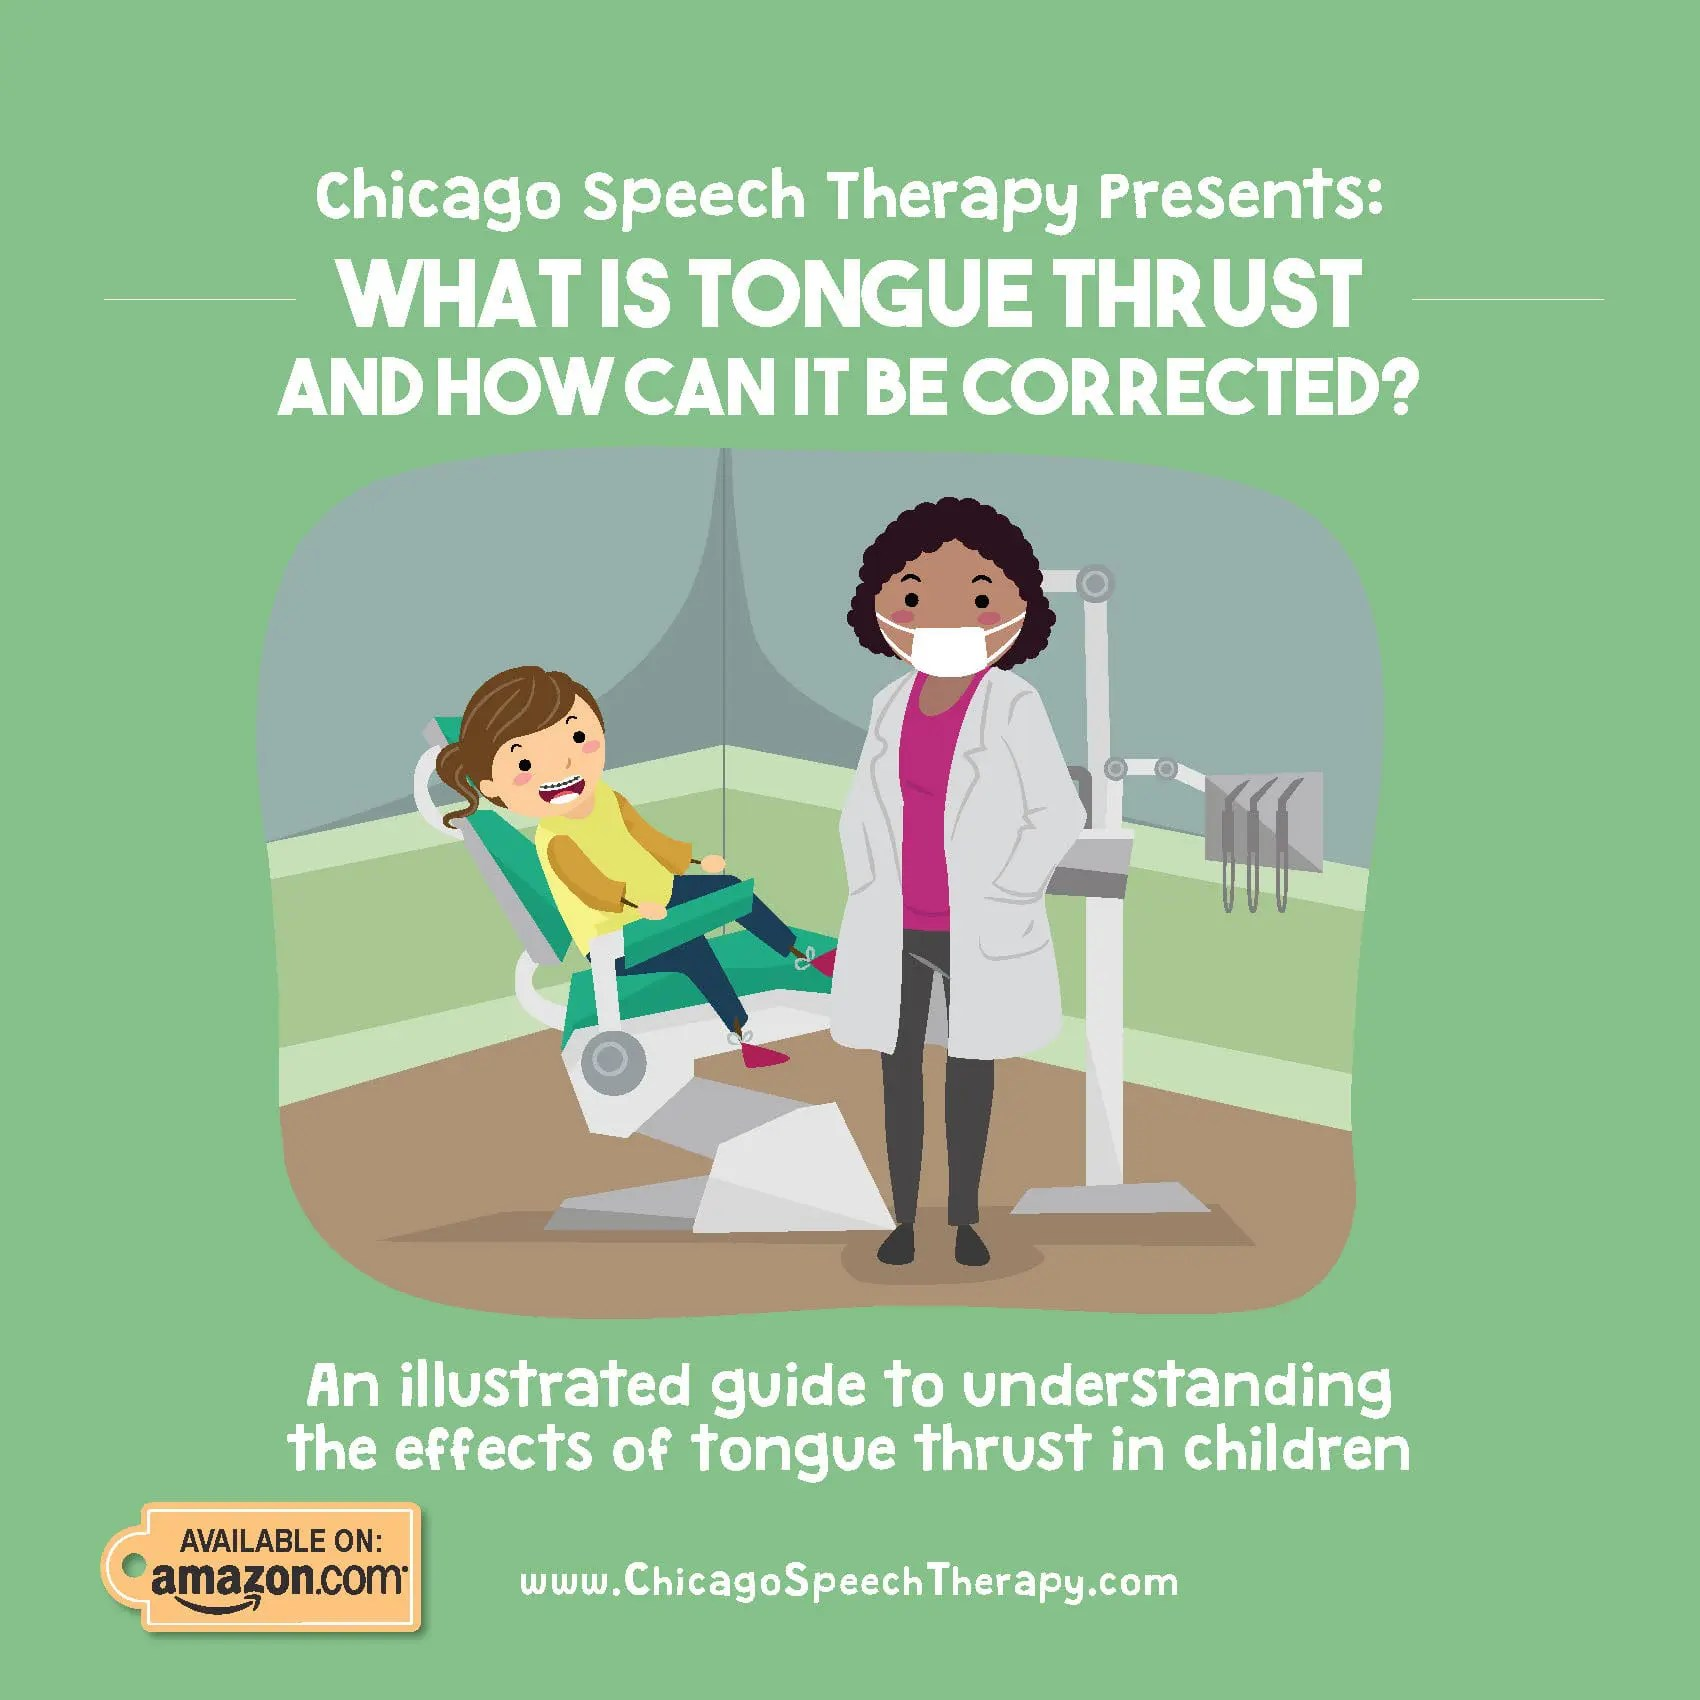 What Is Tongue Thrust And How Can It Be Corrected